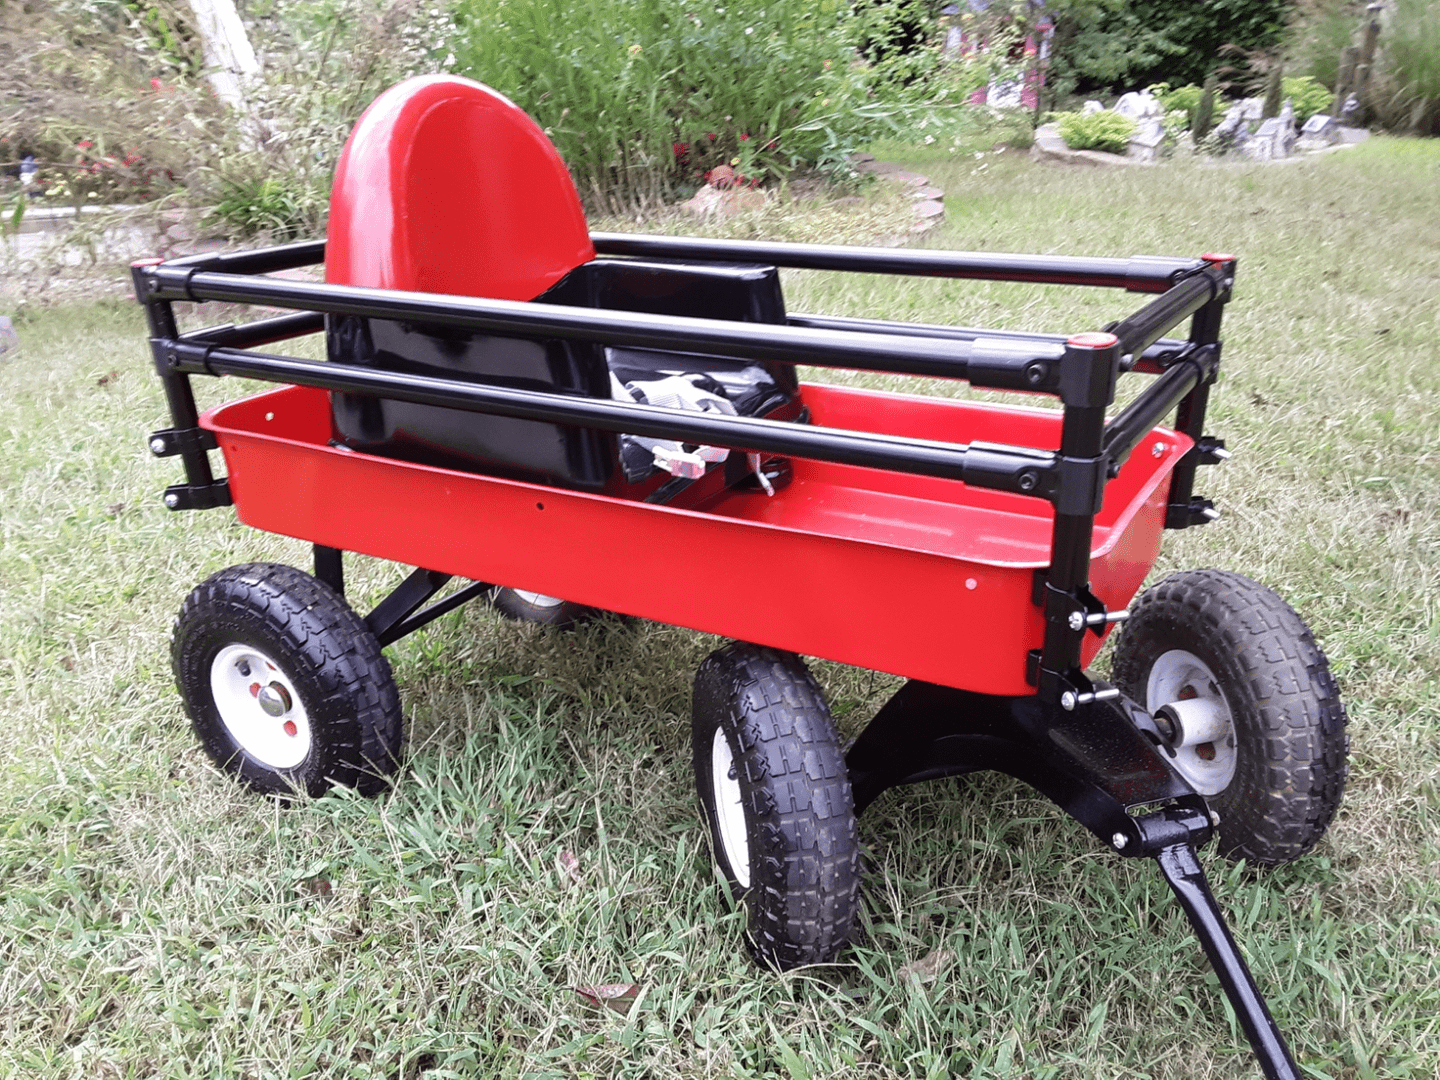 Wagon With Conduit Hangers On the Side